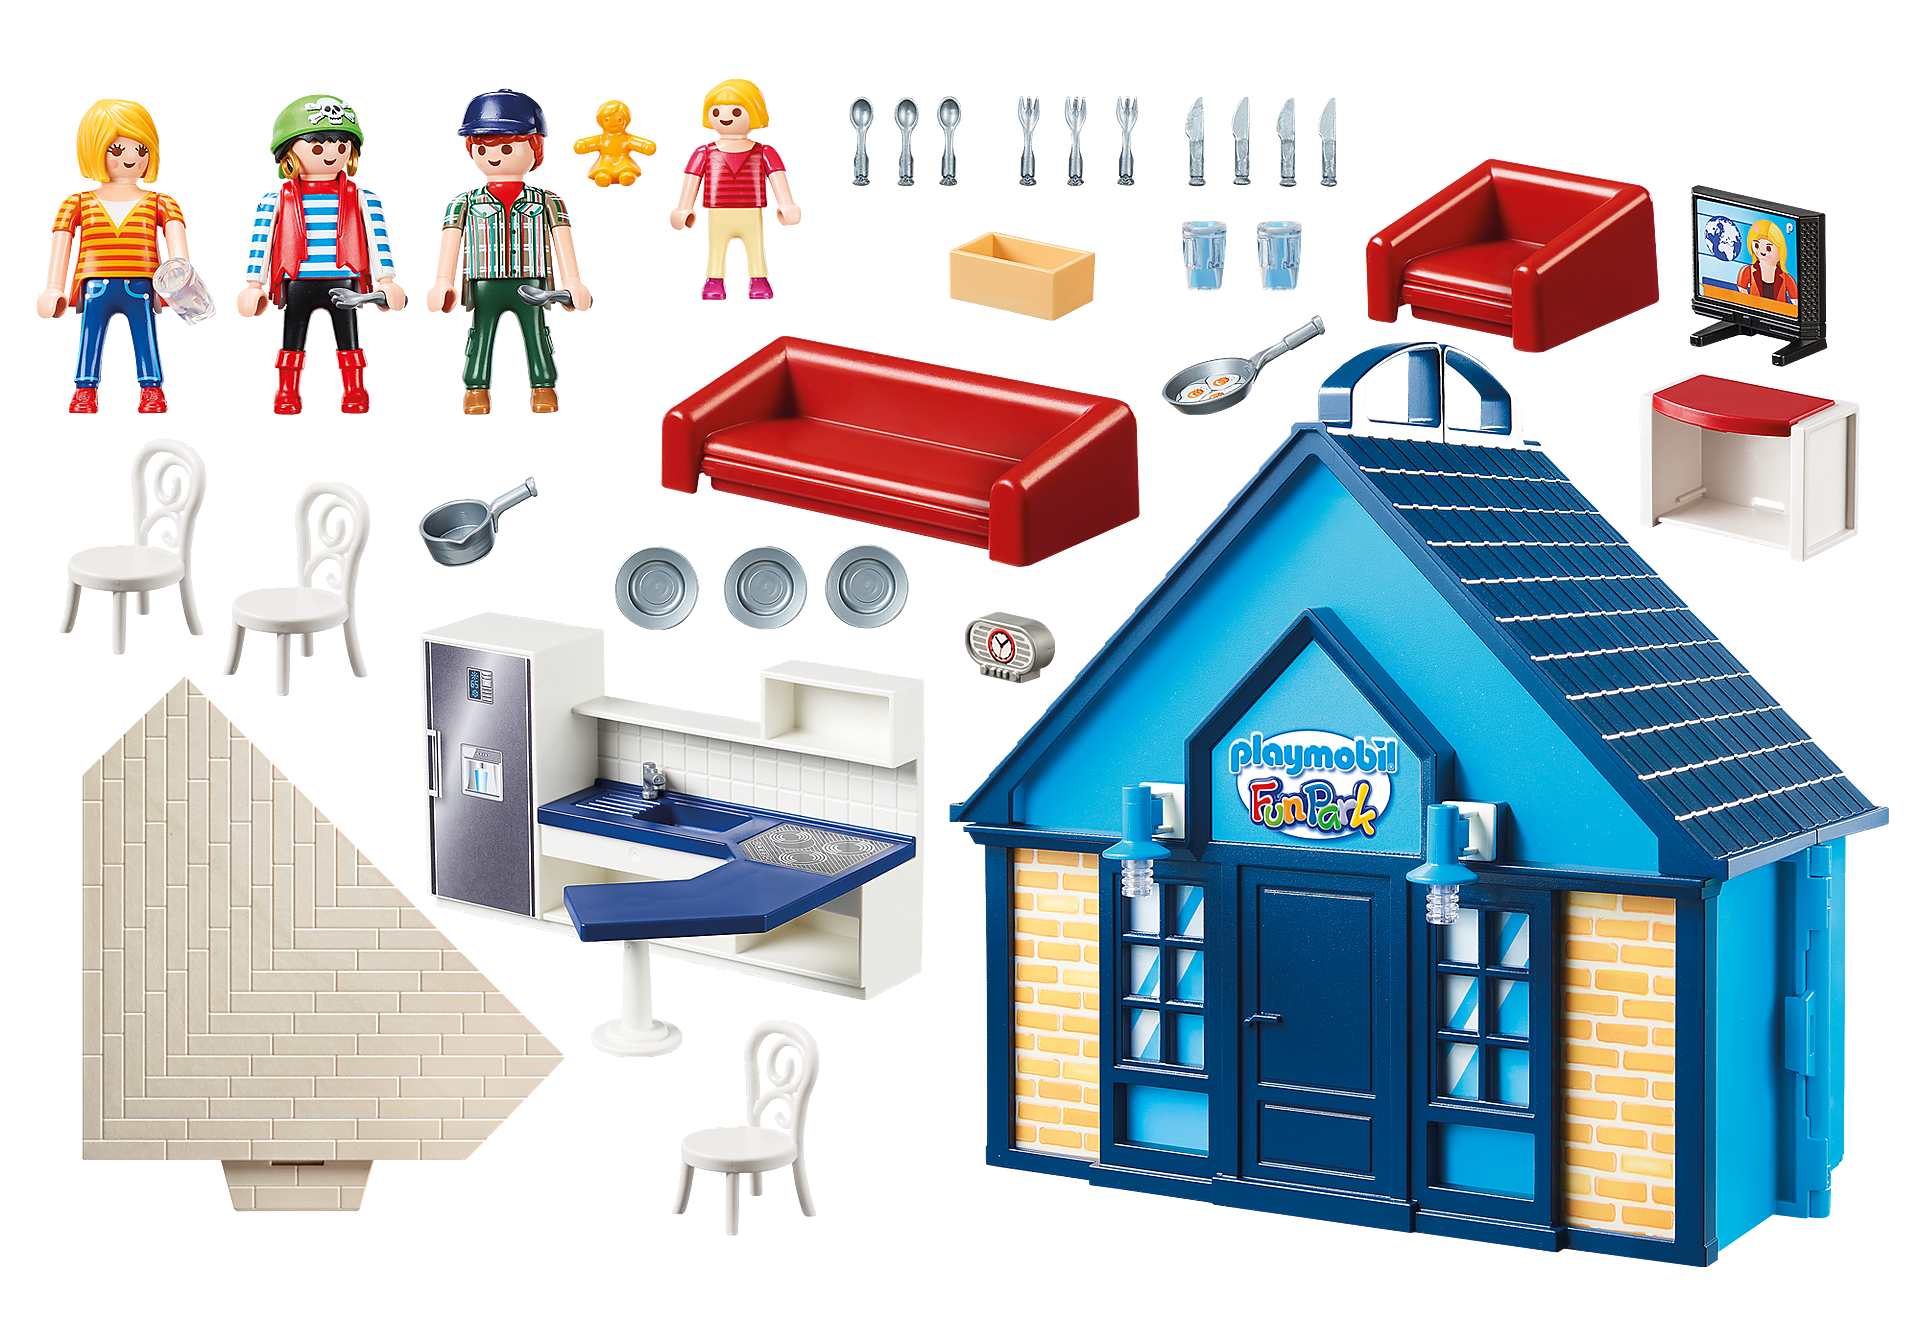 70219 PLAYMOBIL FunPark Summerhouse Take Along zoom image3